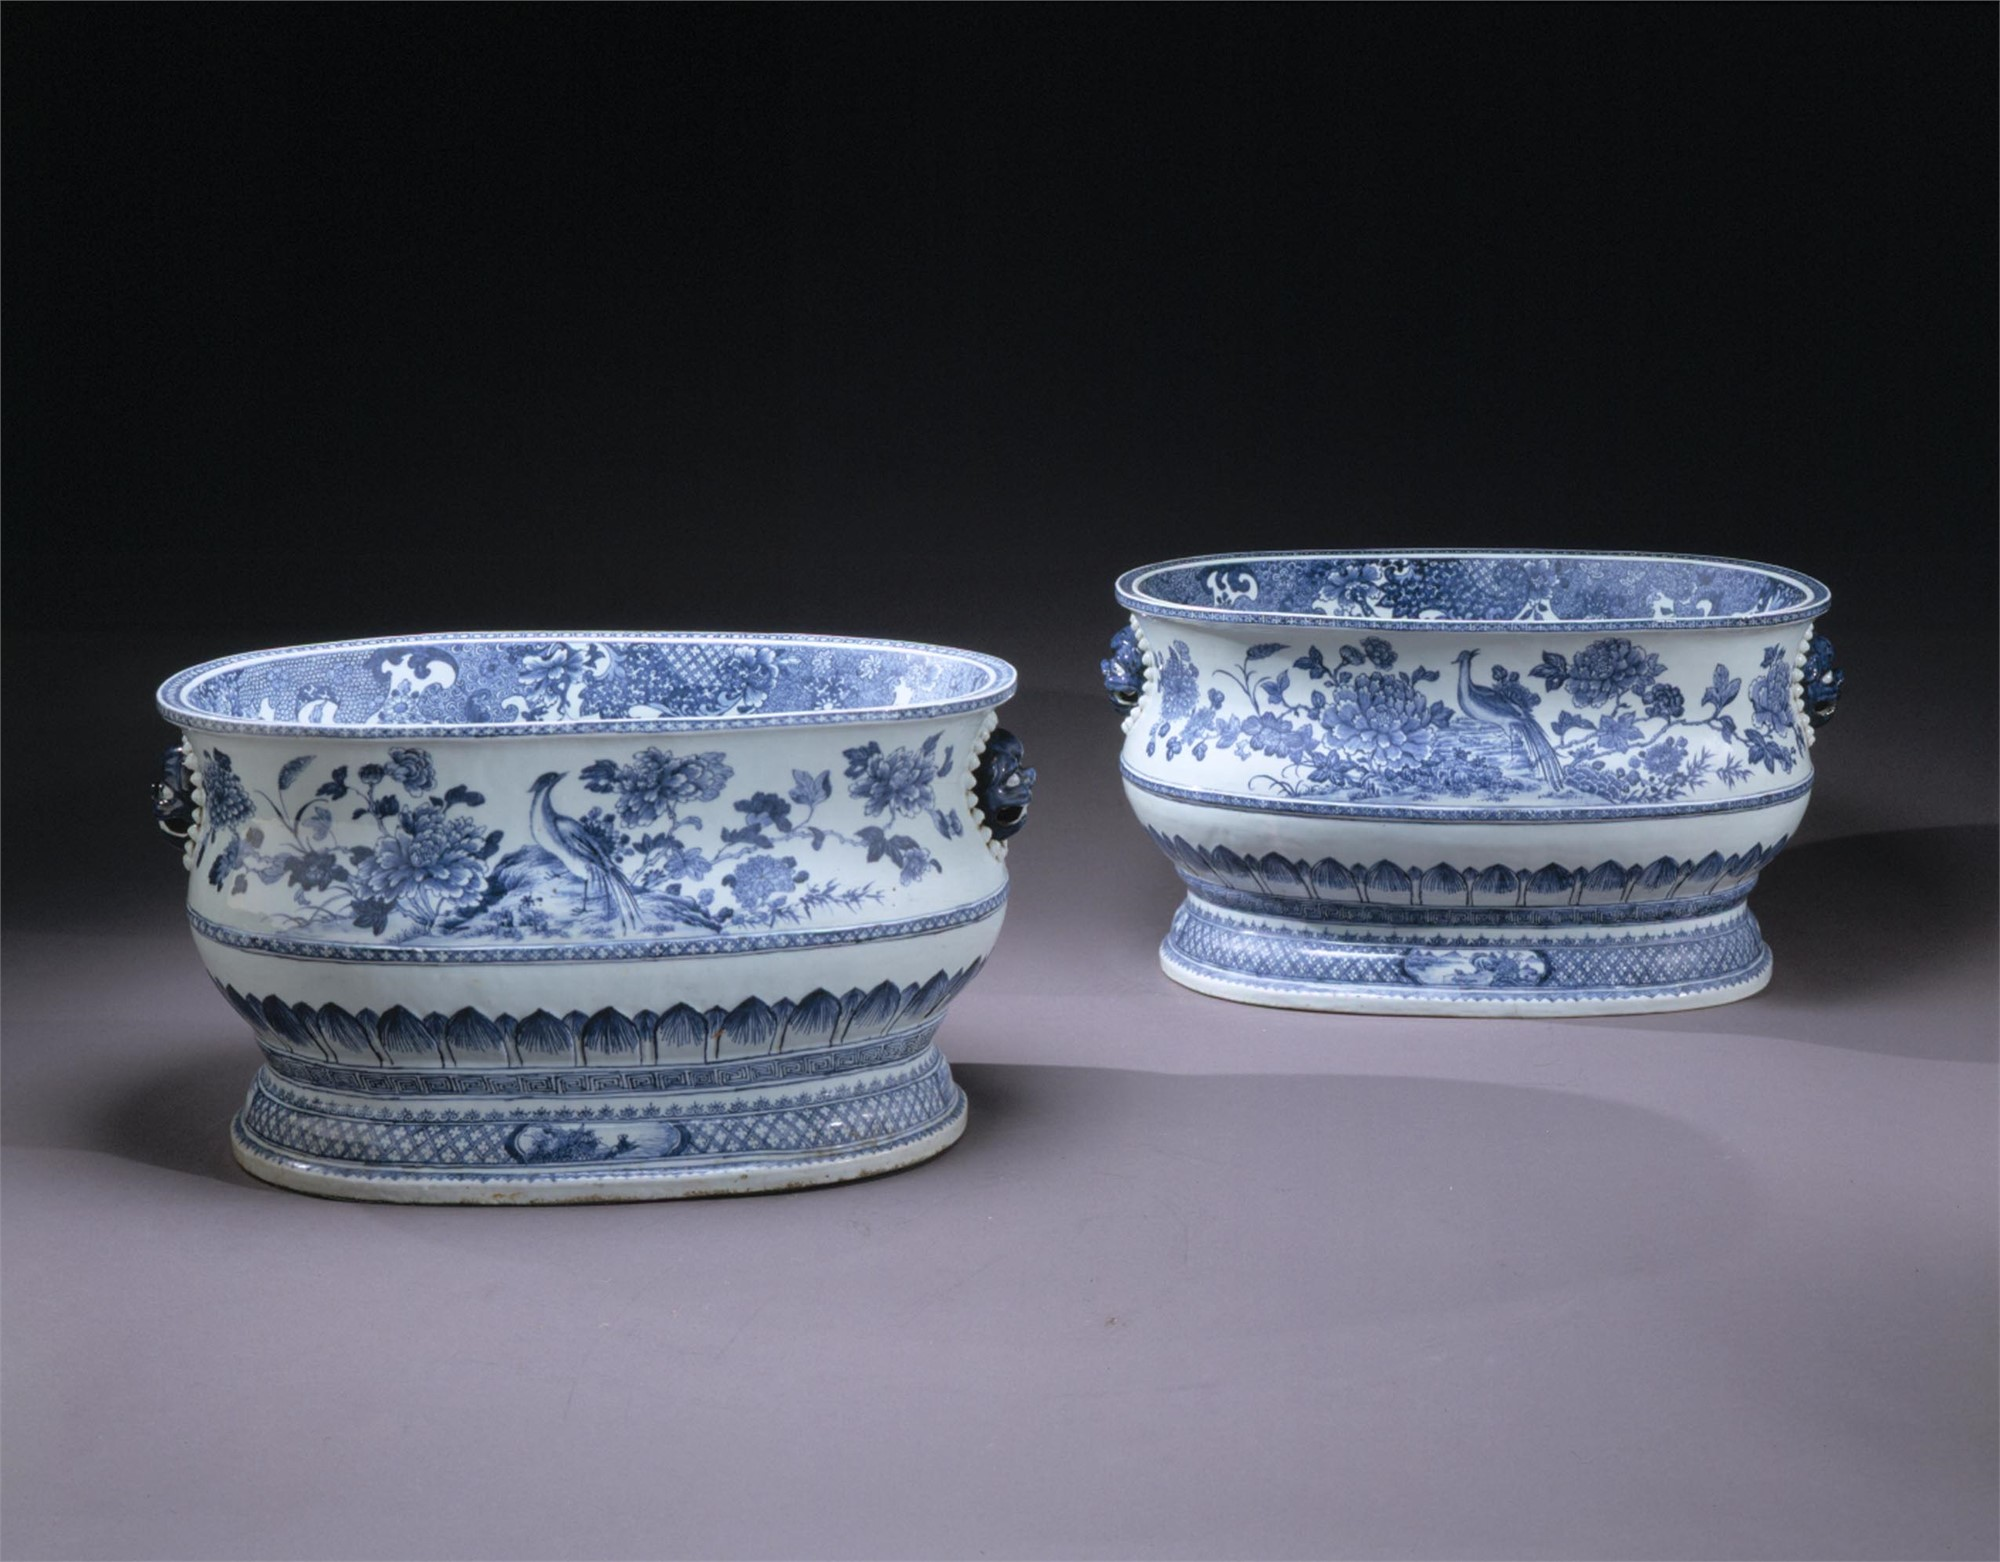 PAIR OF LARGE BLUE AND WHITE CISTERNS